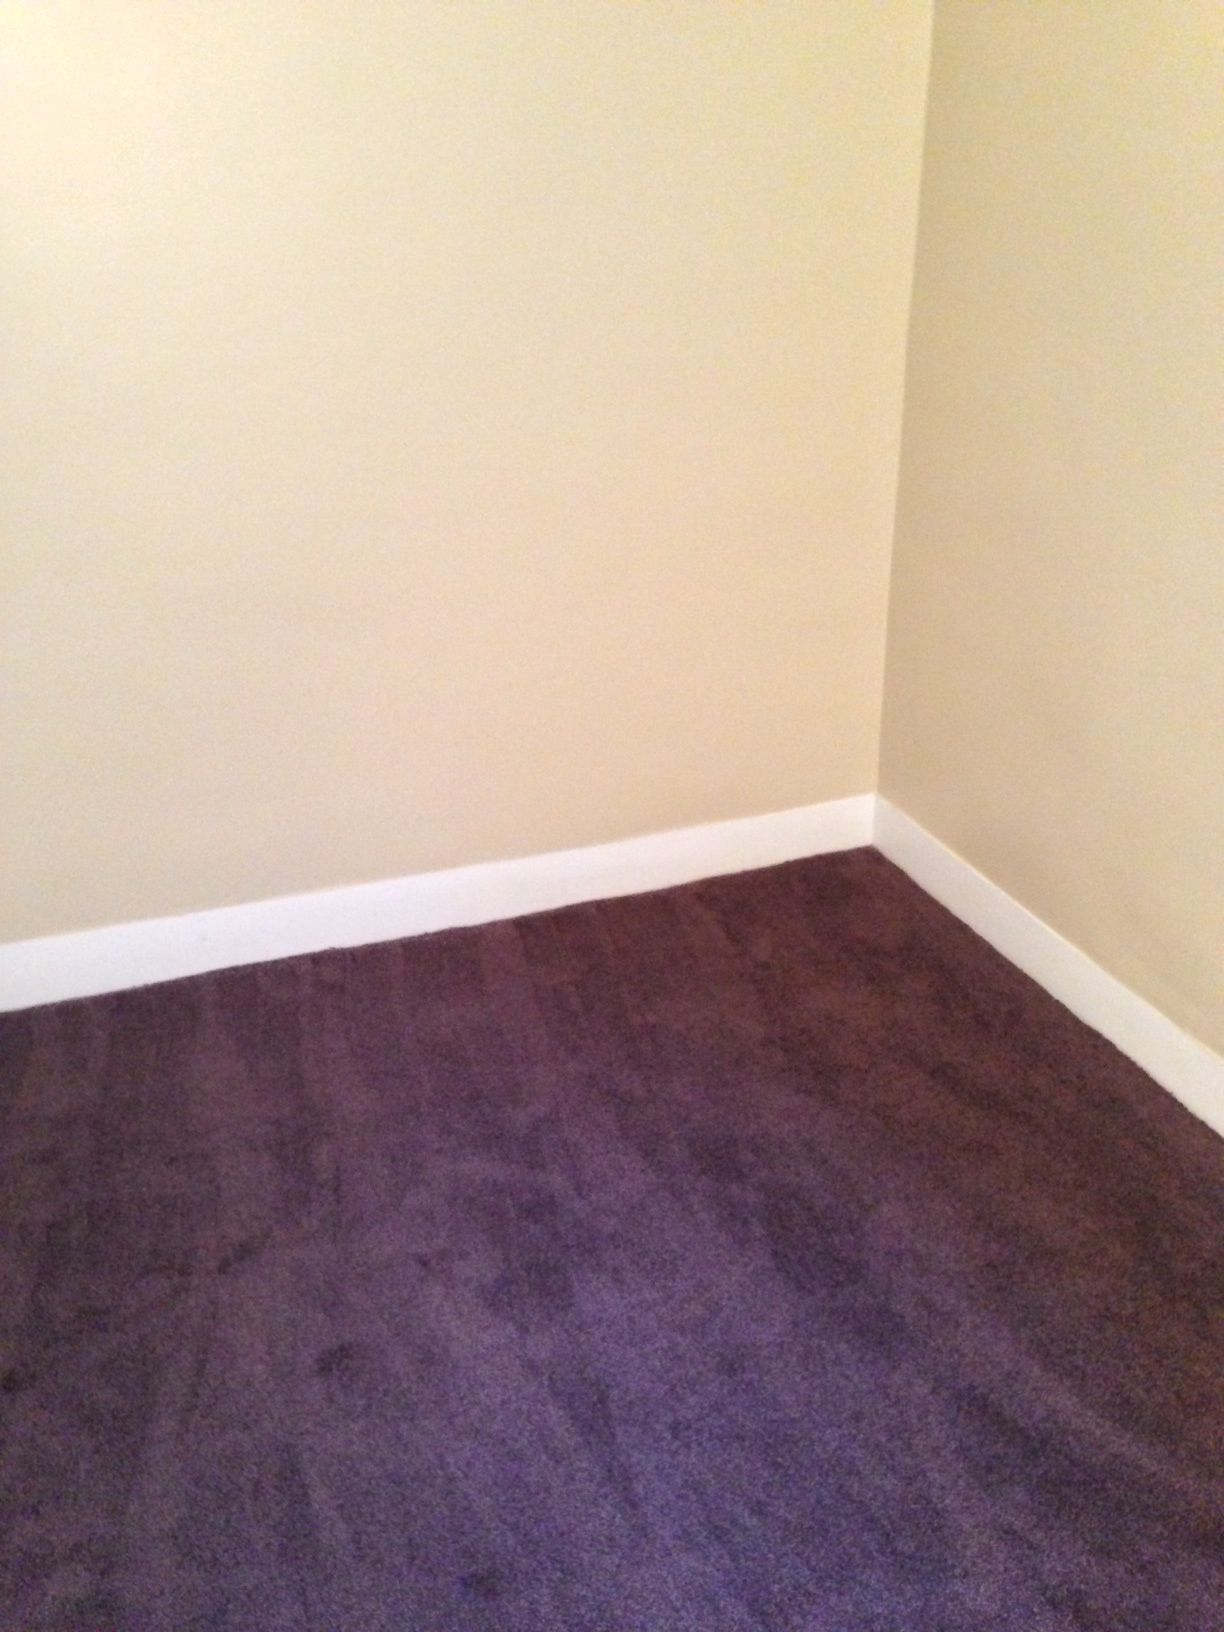 Pin By Sarah On French Shabby Chic Buying Carpet Diy Carpet Cleaner Purple Walls